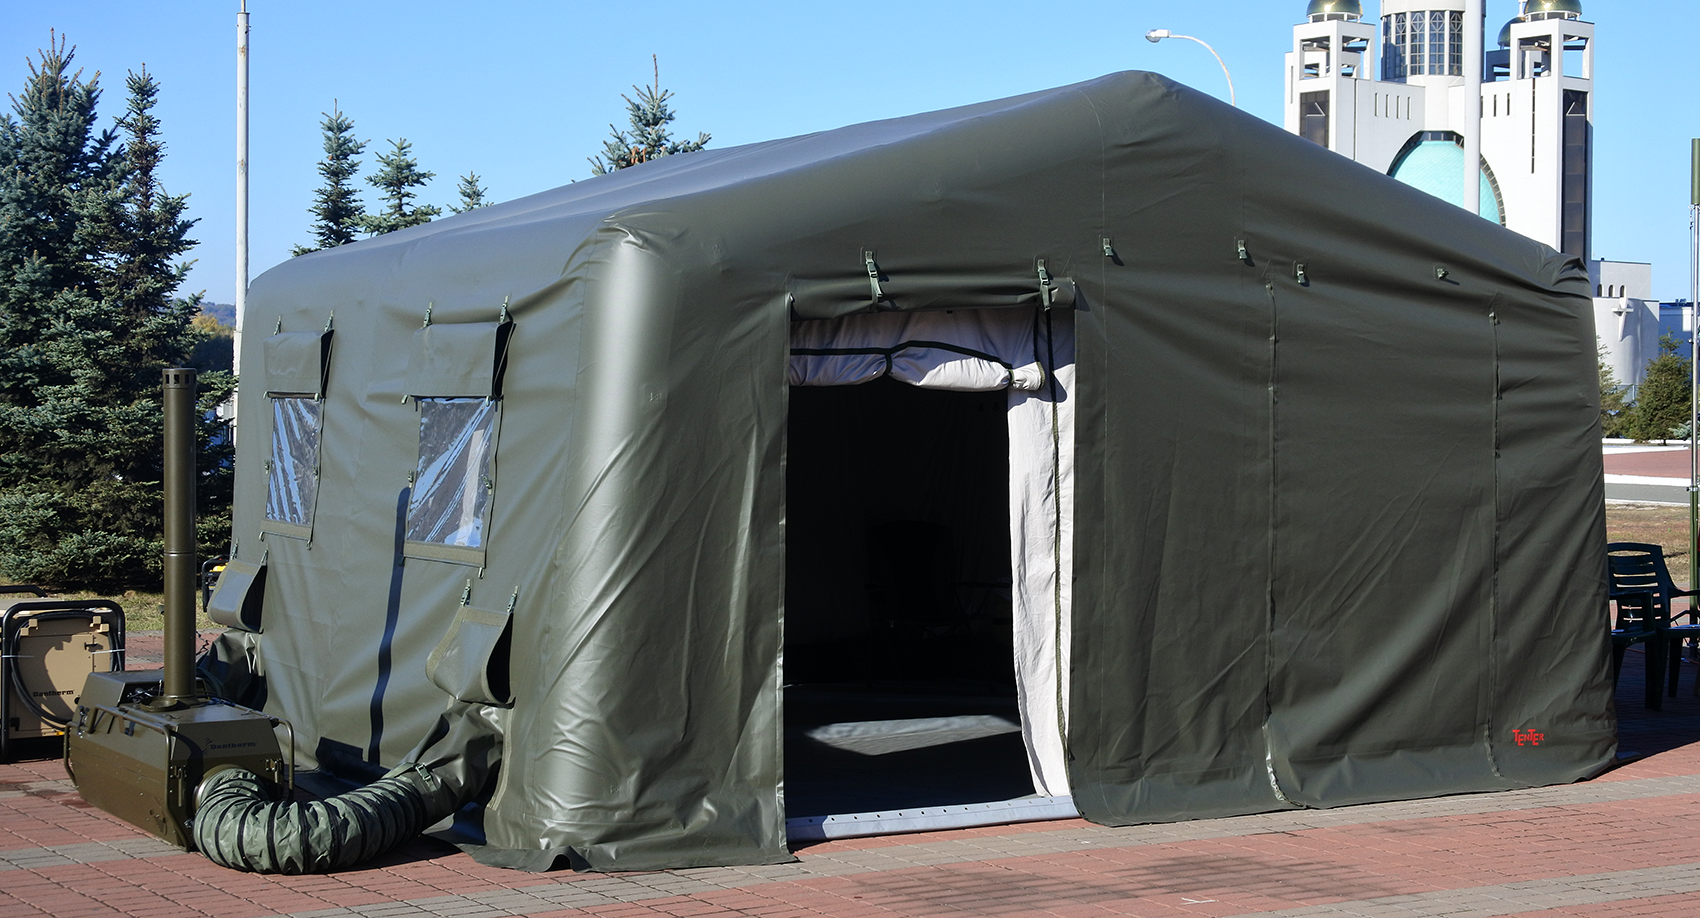 Air-frame inflatable military tent shelter TENTER AFT-27 & Airframe inflatable airbeam tents shelters quick deploy military ...